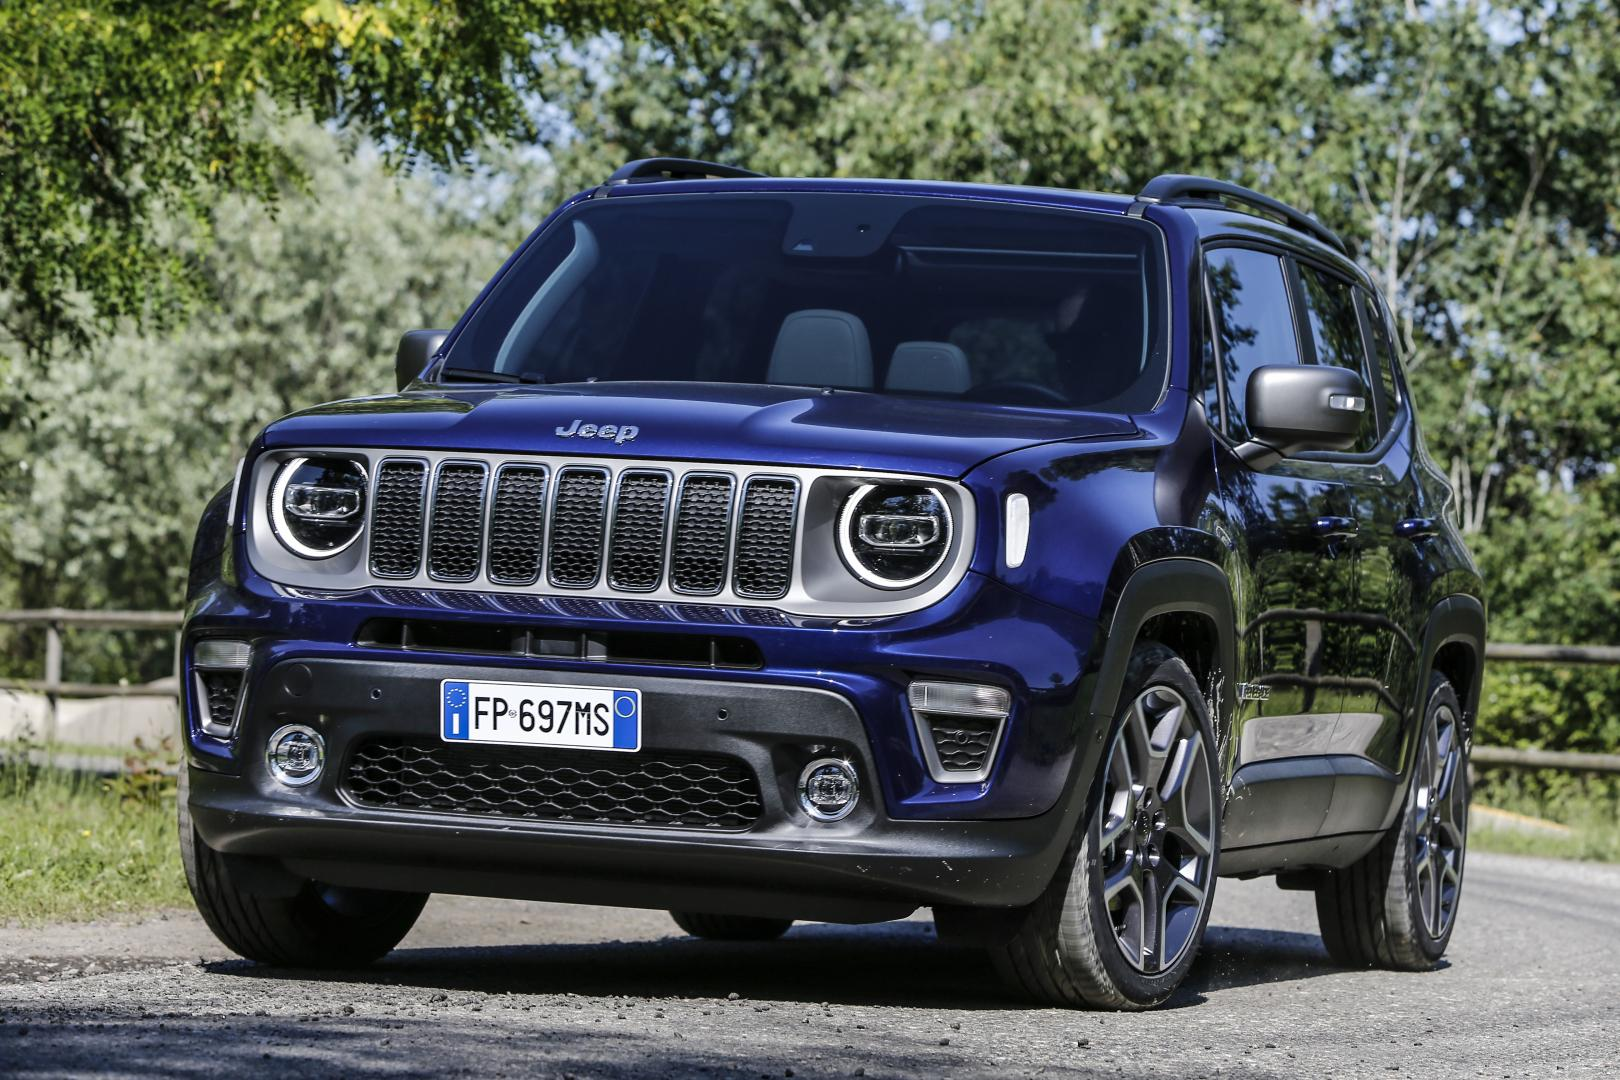 Jeep renegade facelift voorkant